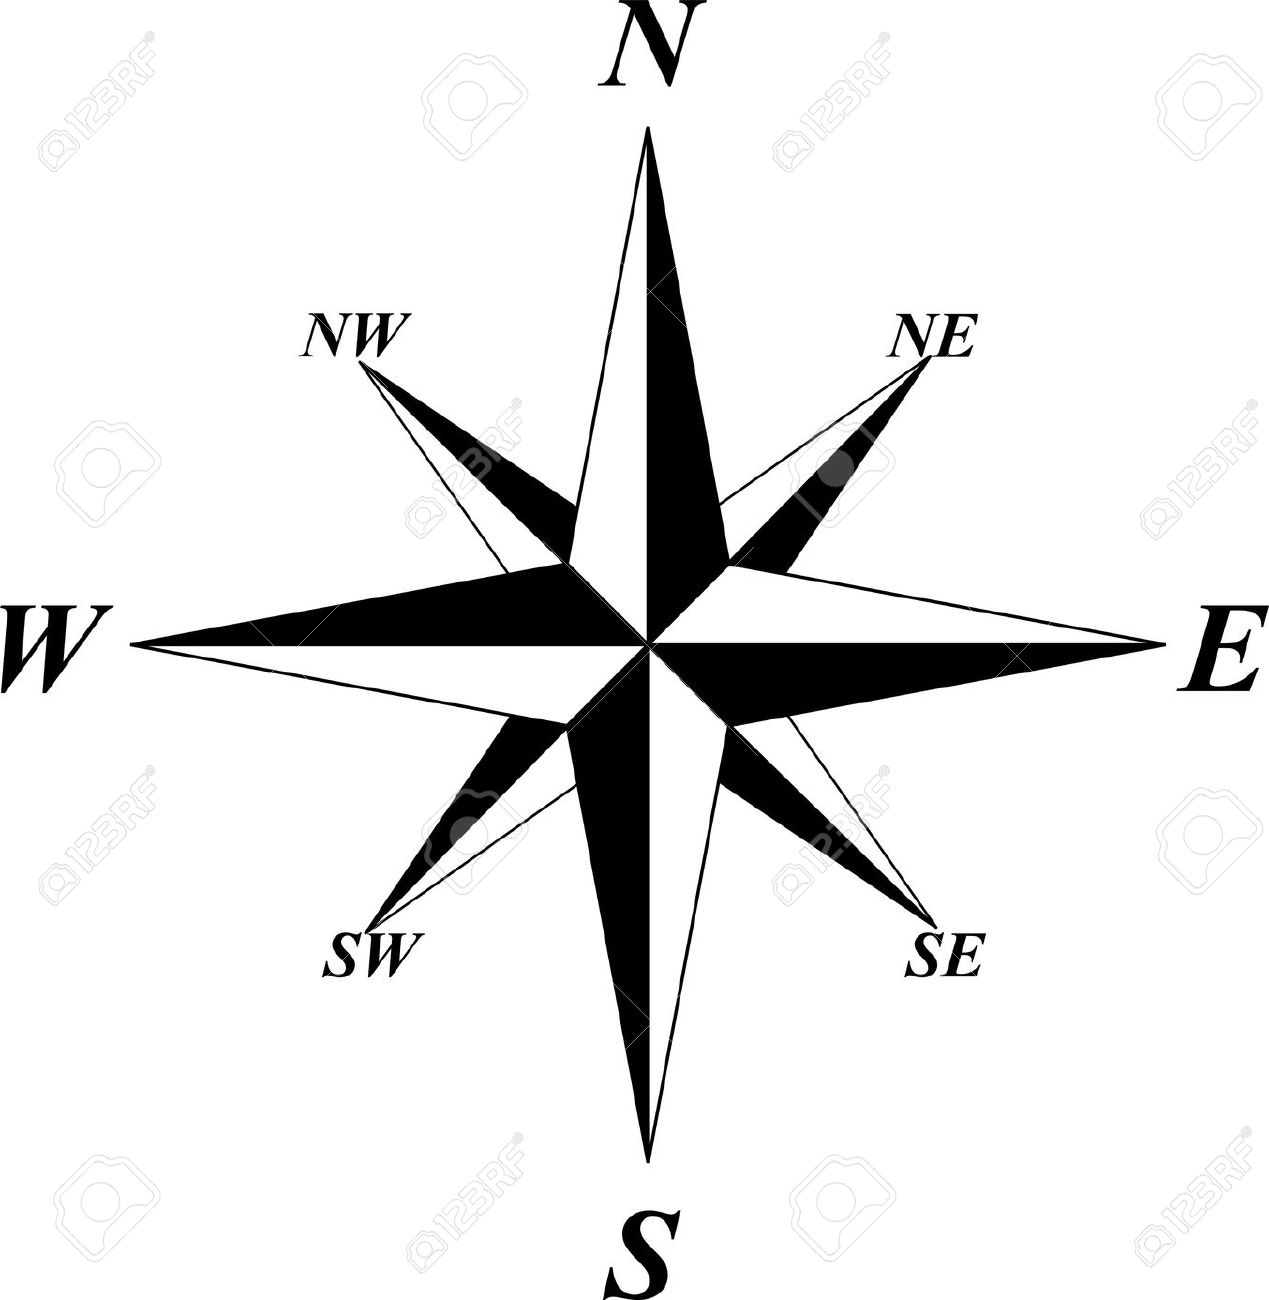 Wind Rose Royalty Free Cliparts, Vectors, And Stock Illustration.